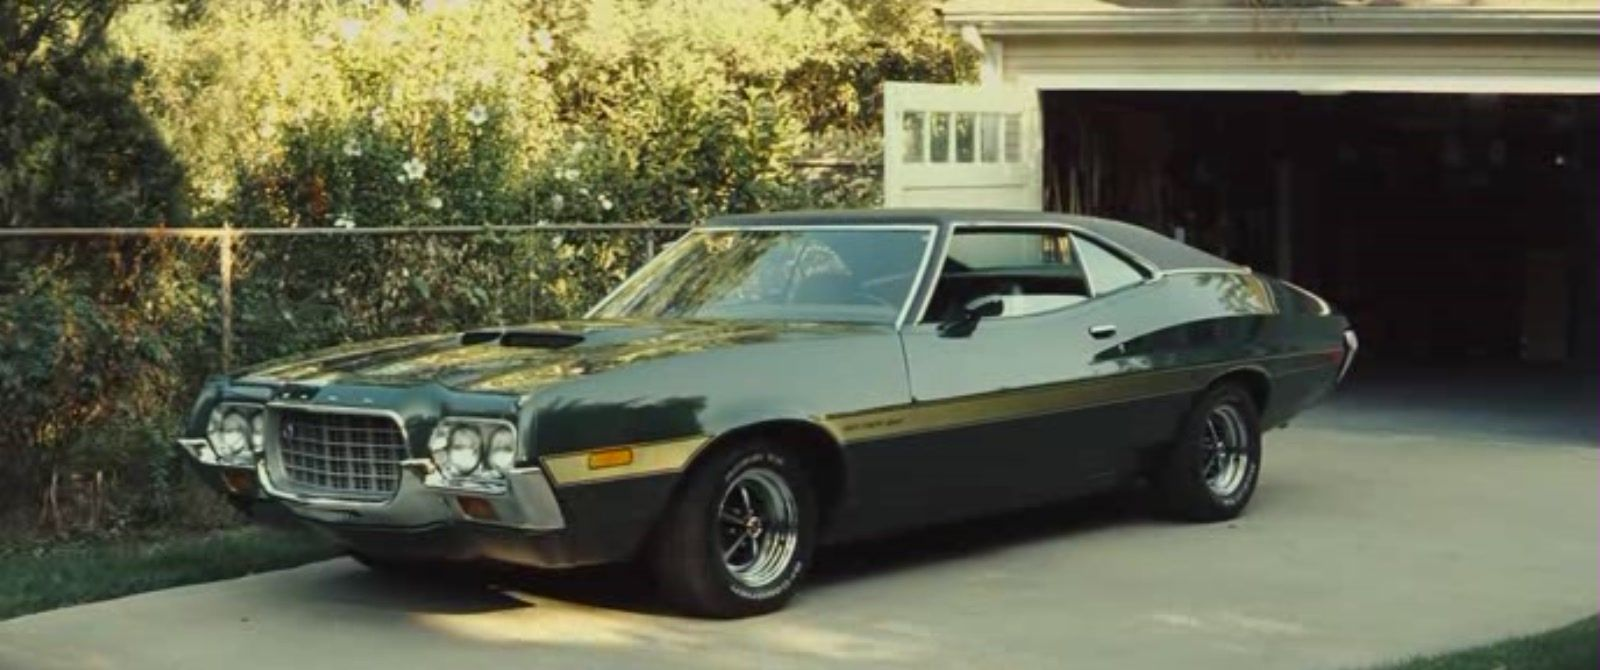 Ford Gran Torino From Grant Torino Cars Movie Famous Movie Cars Grand Torino